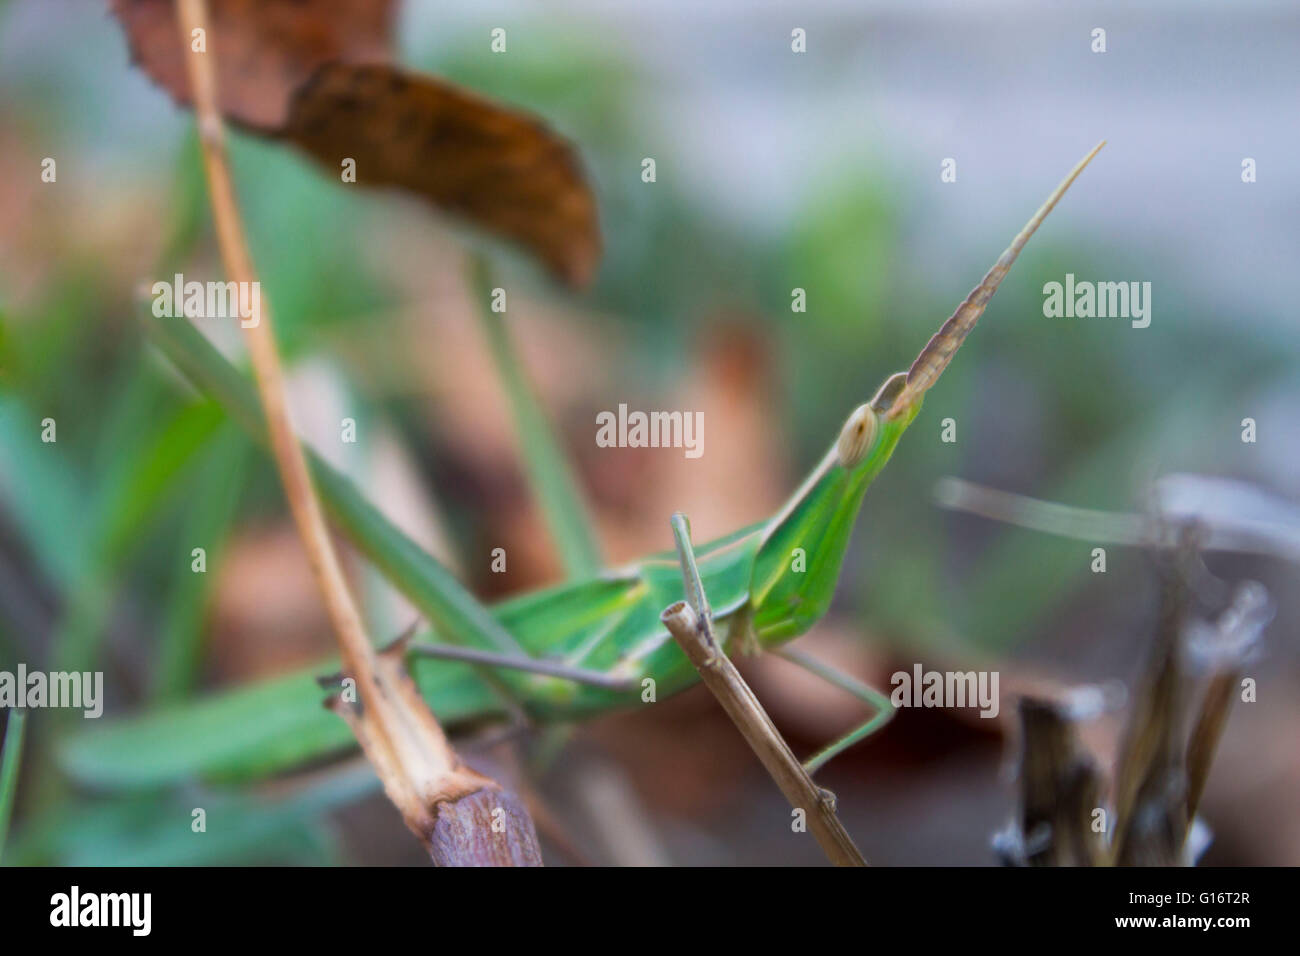 cricket that blends in with the environment on a leaf - Stock Image